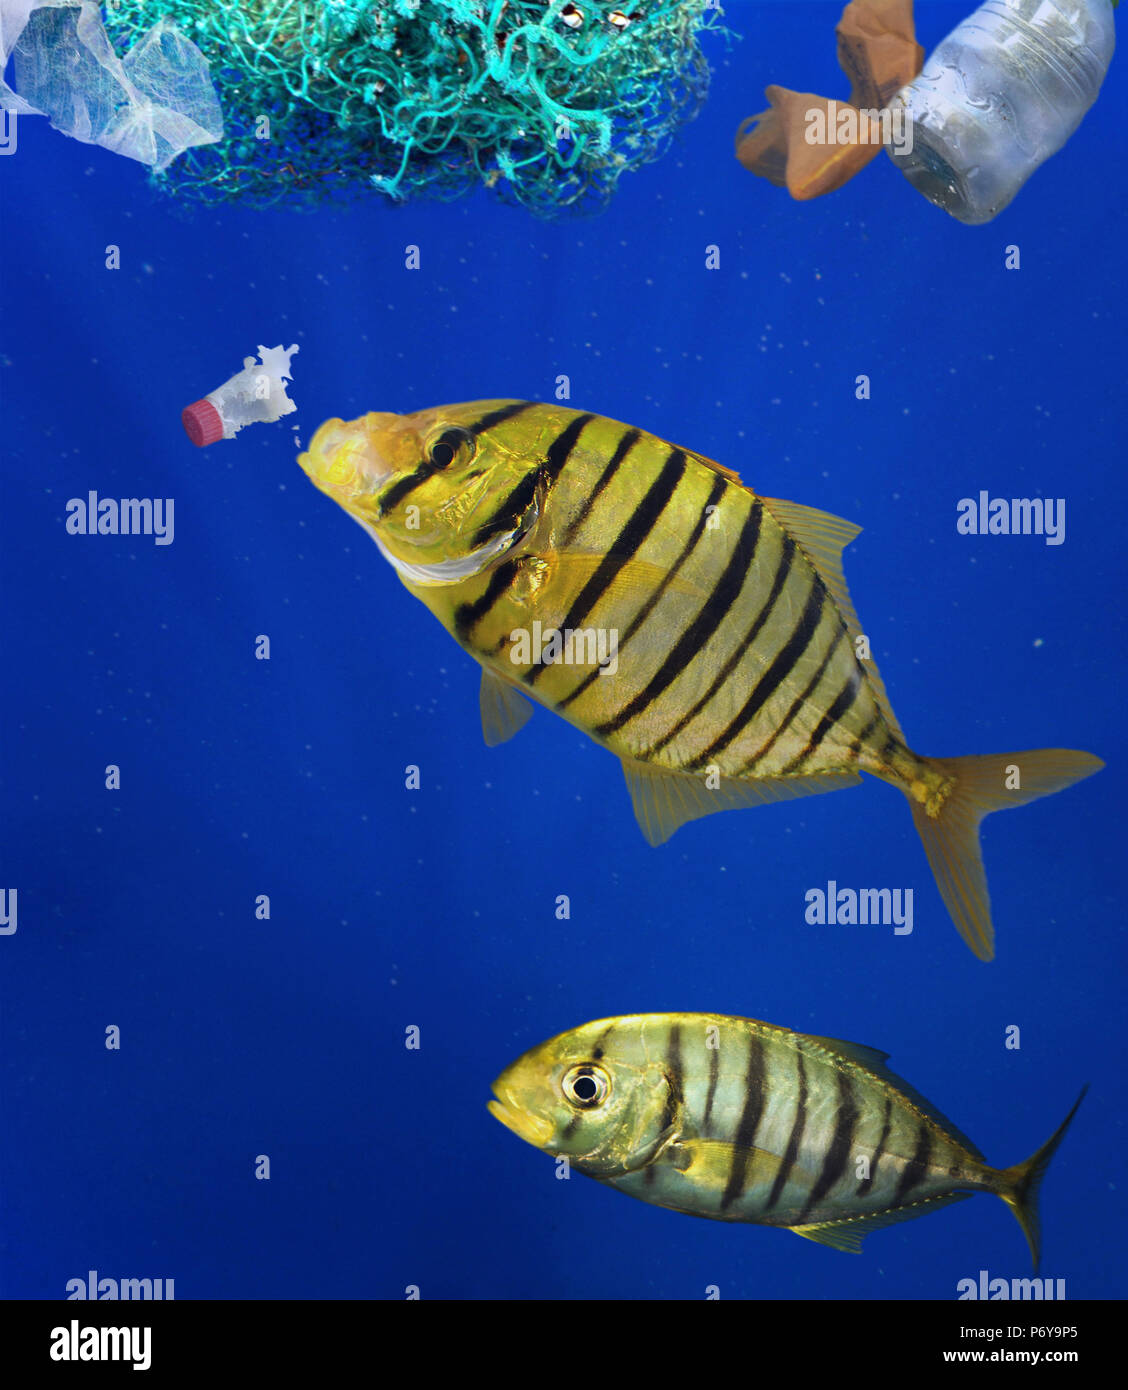 Golden trevally, Gnathanodon speciosus, eating plastic bottle. Stock Photo